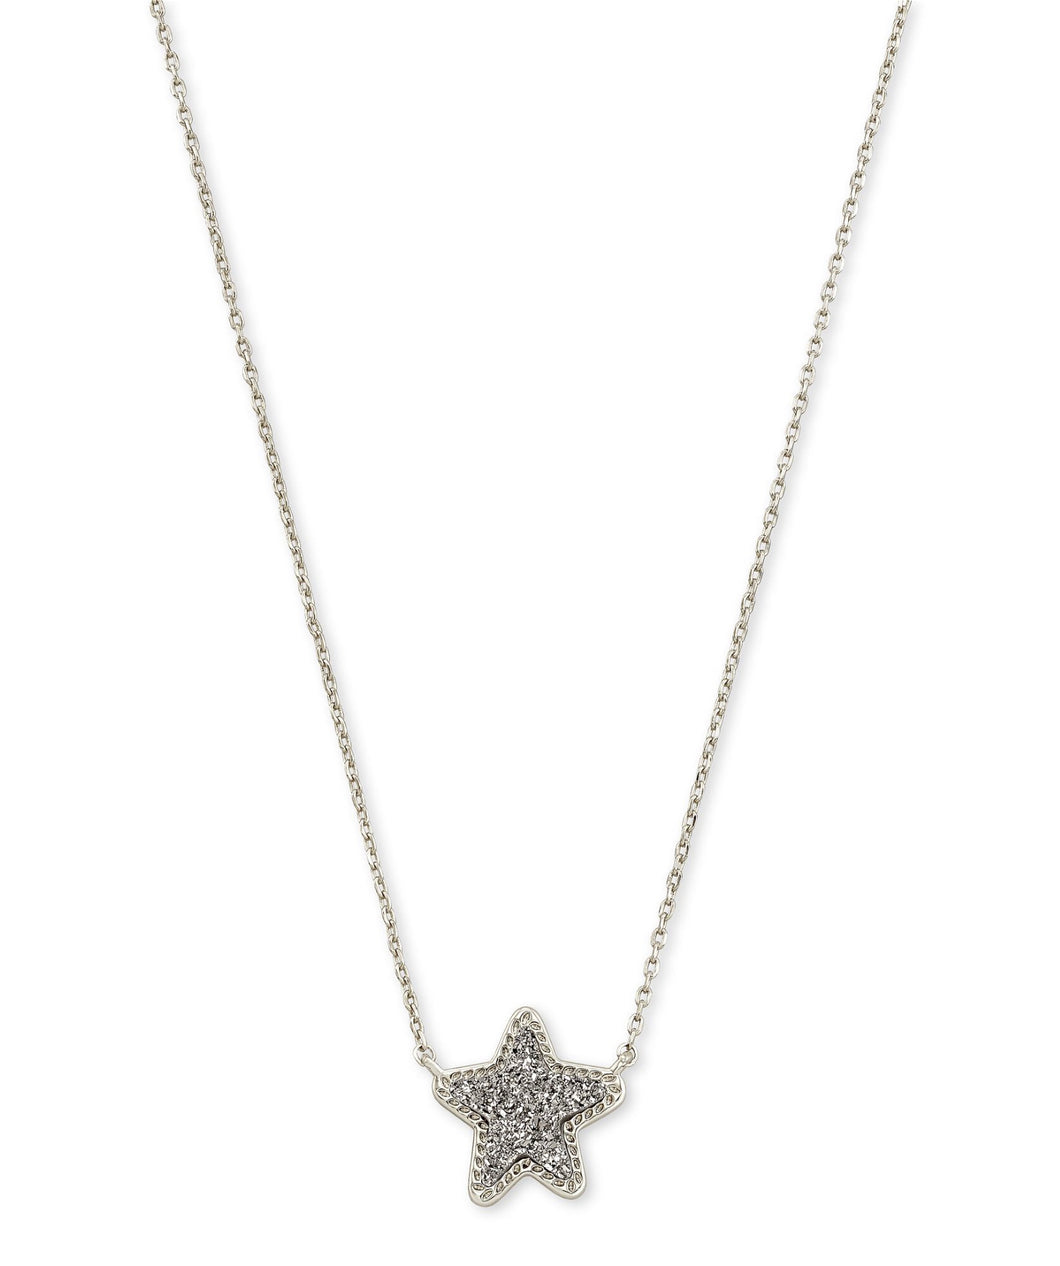 Kendra Scott: Jae Star Pendant Necklace - Silver Platinum Drusy